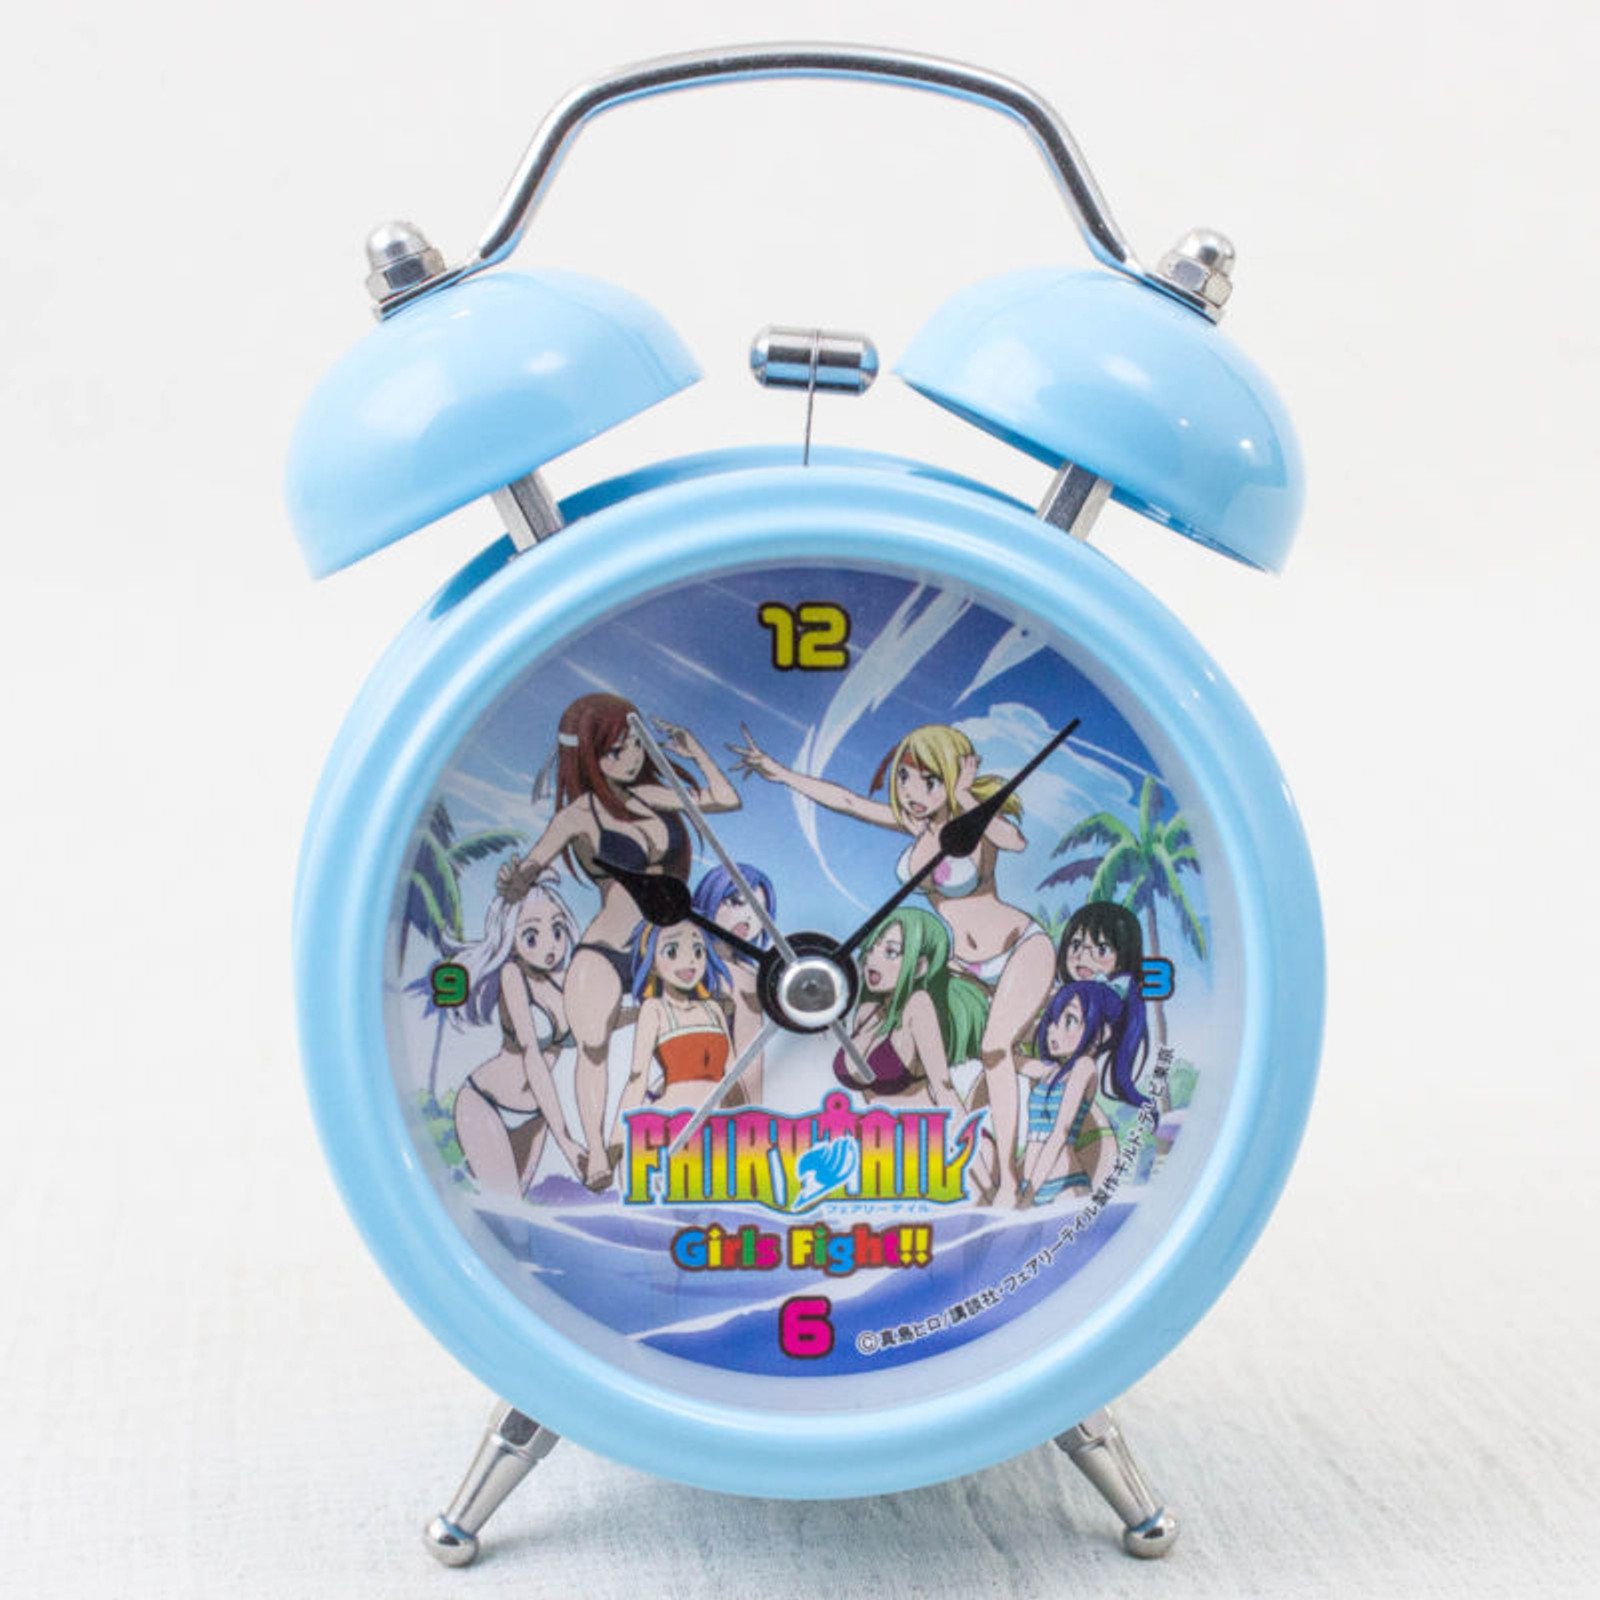 FAIRY TAIL Mini Alarm Clock Light Blue Ver. Taito JAPAN ANIME MANGA